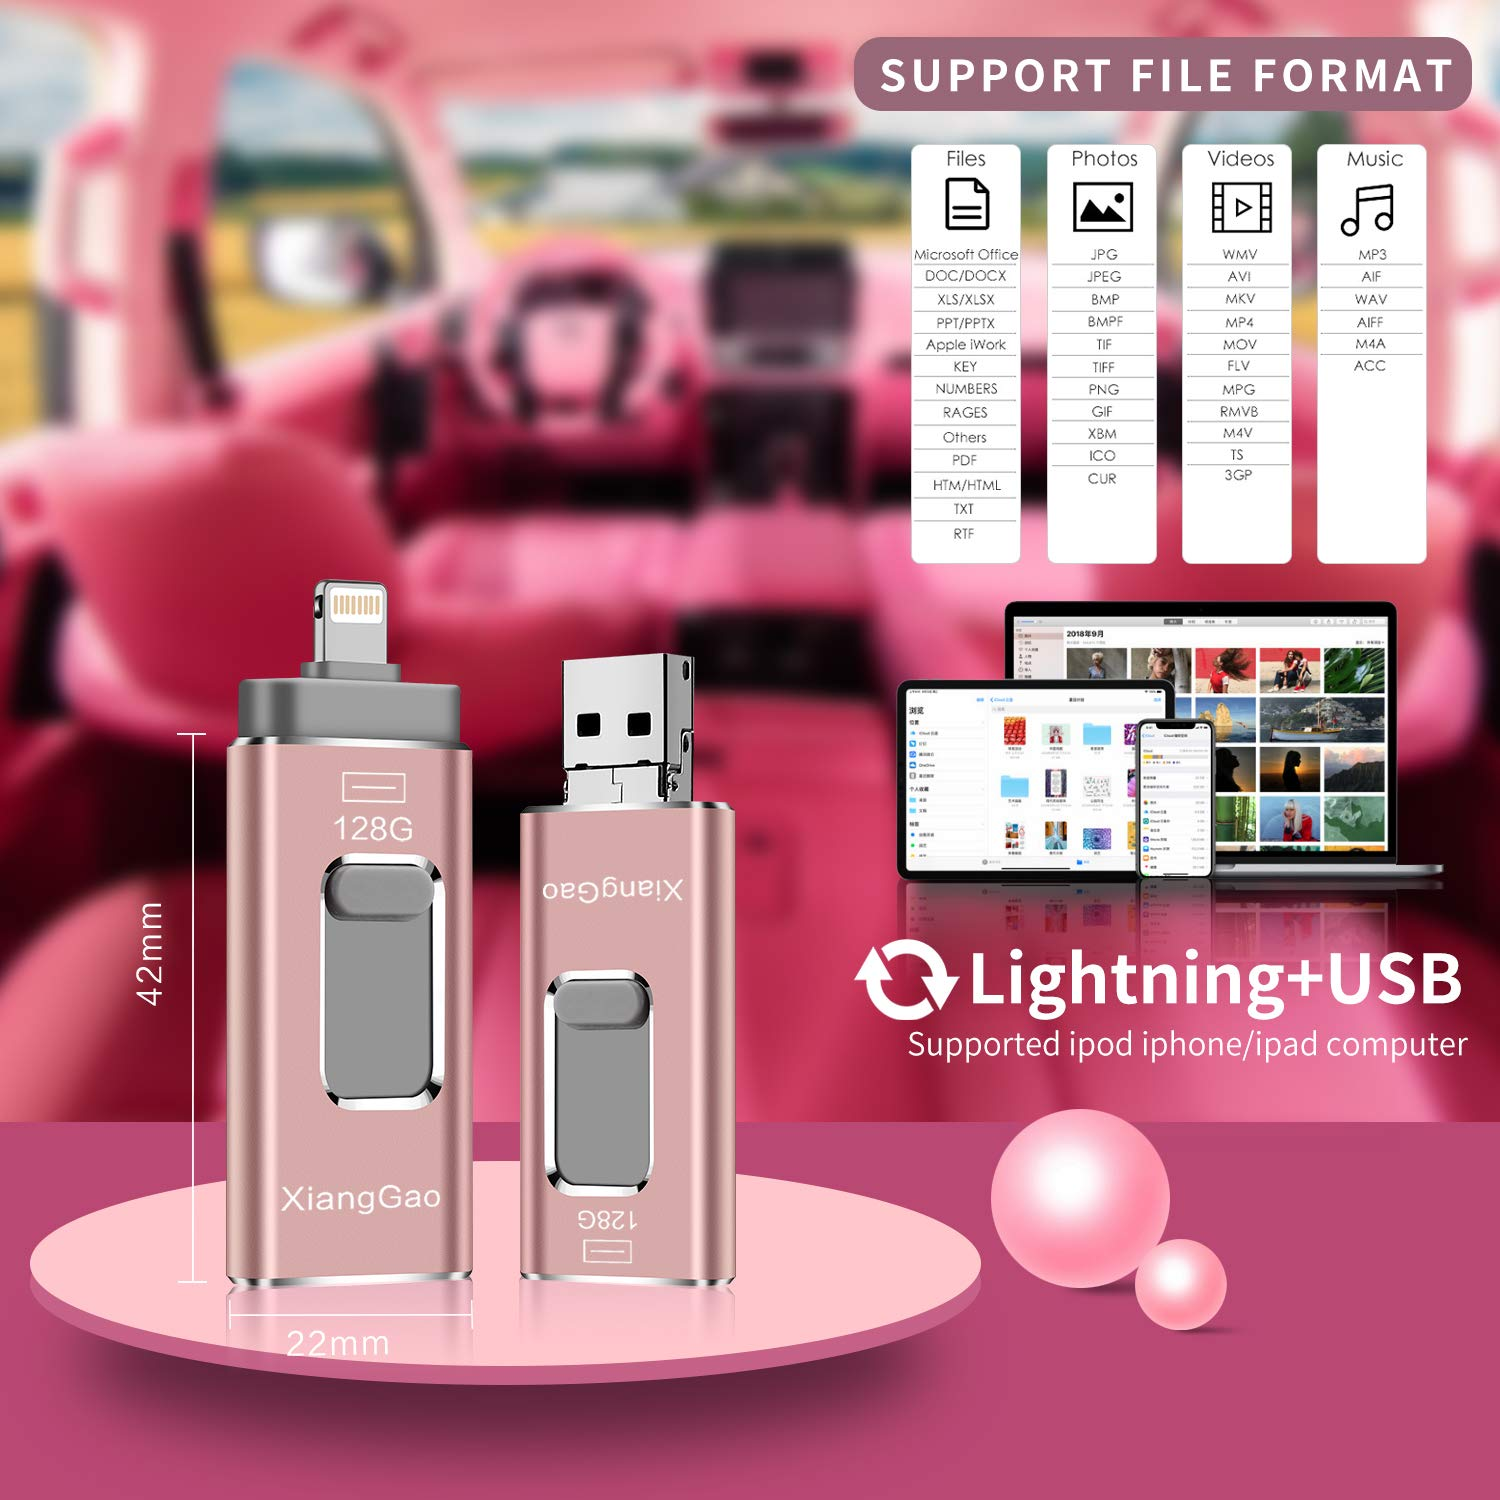 iOS Flash Drive for iPhone Photo Stick 128GB Memory Stick XiangGao USB 3.0 Flash Drive Lightning Memory Stick for iPhone iPad Android and Computers (Pink-128GB) by XG Inc (Image #3)